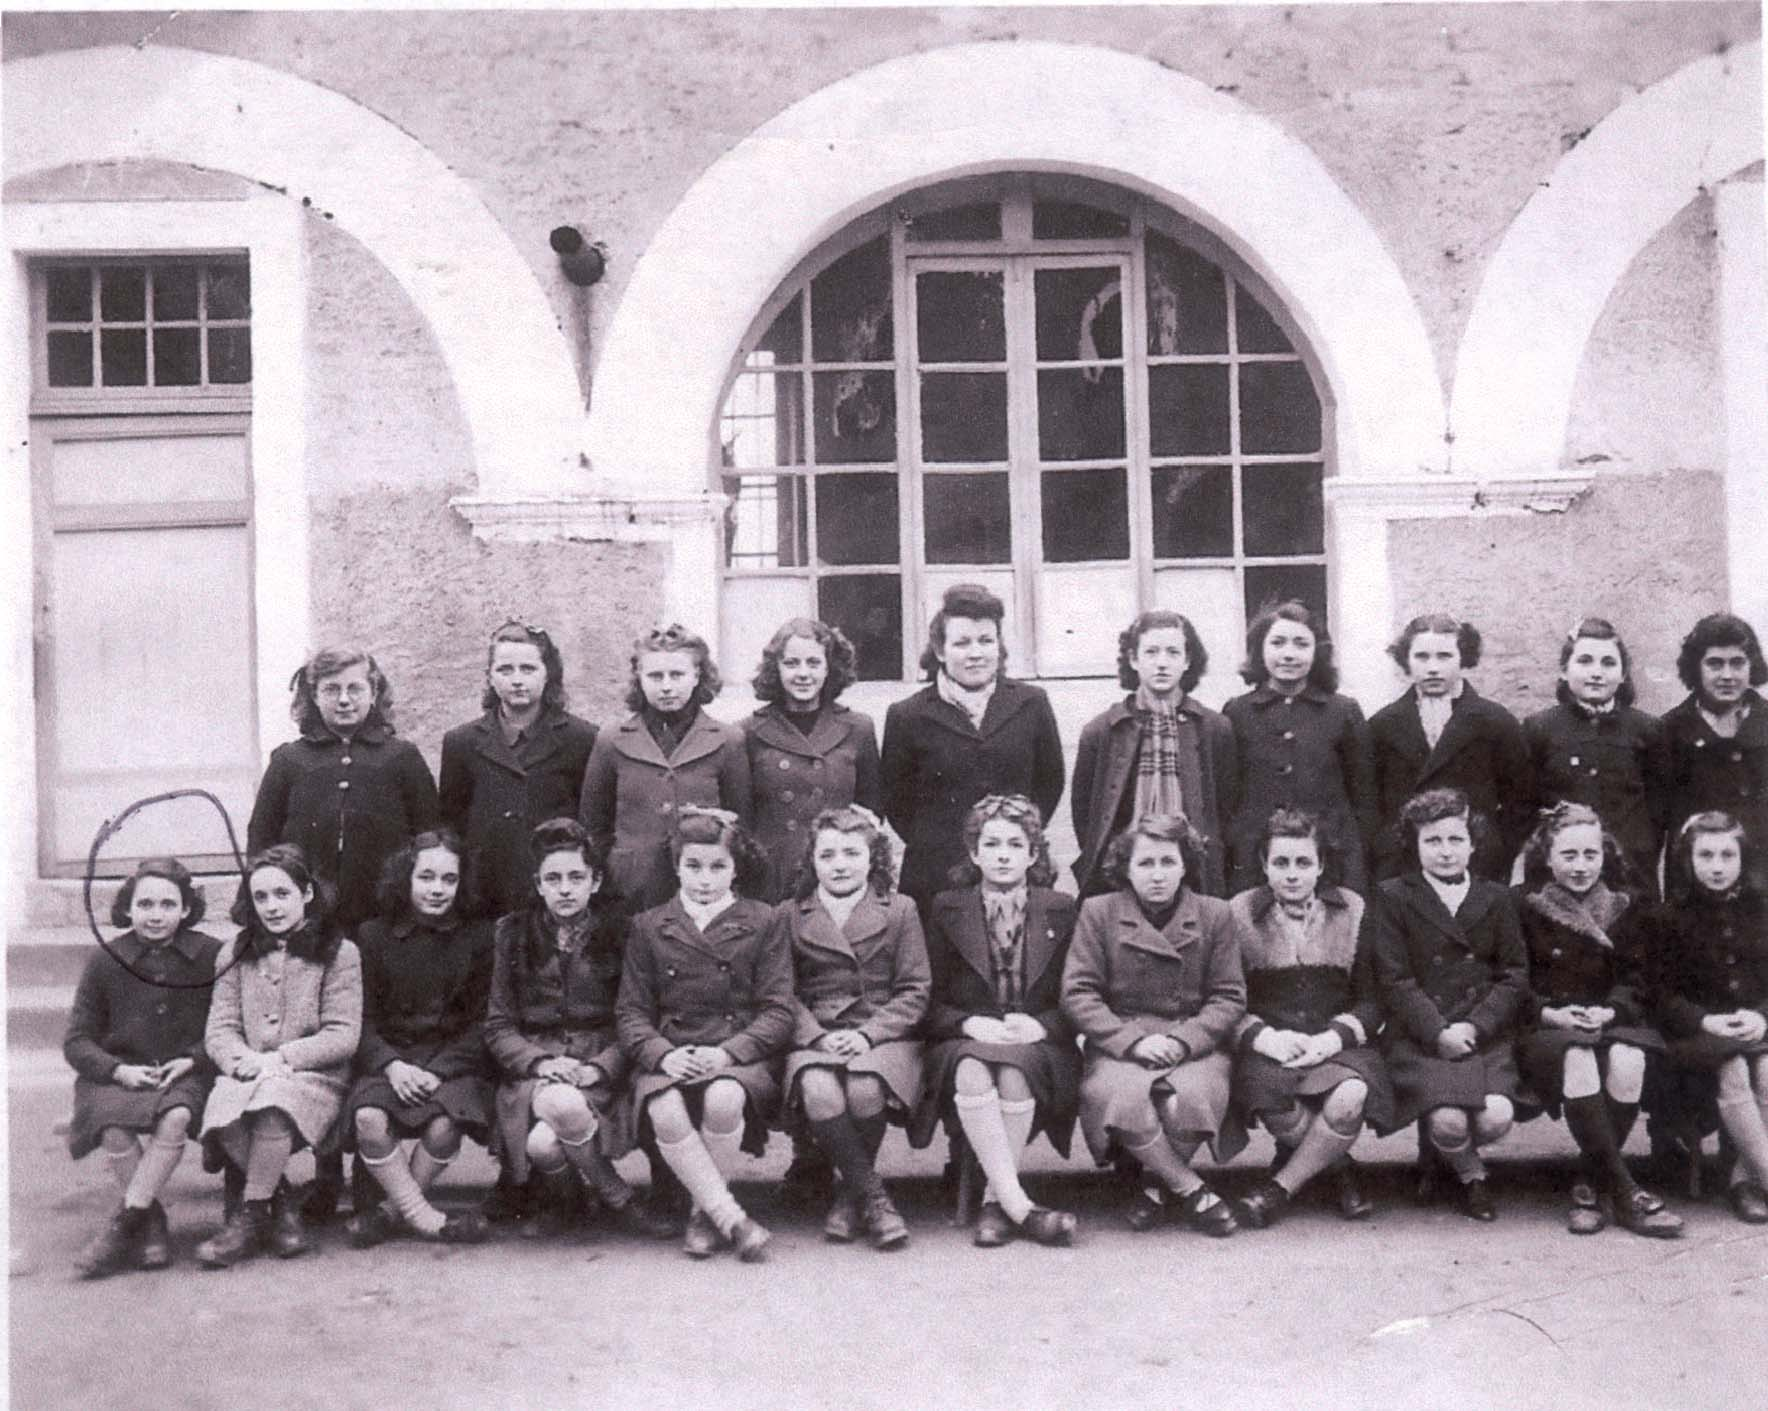 Denise Bystryn (on the left) at St. Jeanne-d'Arc. 1943